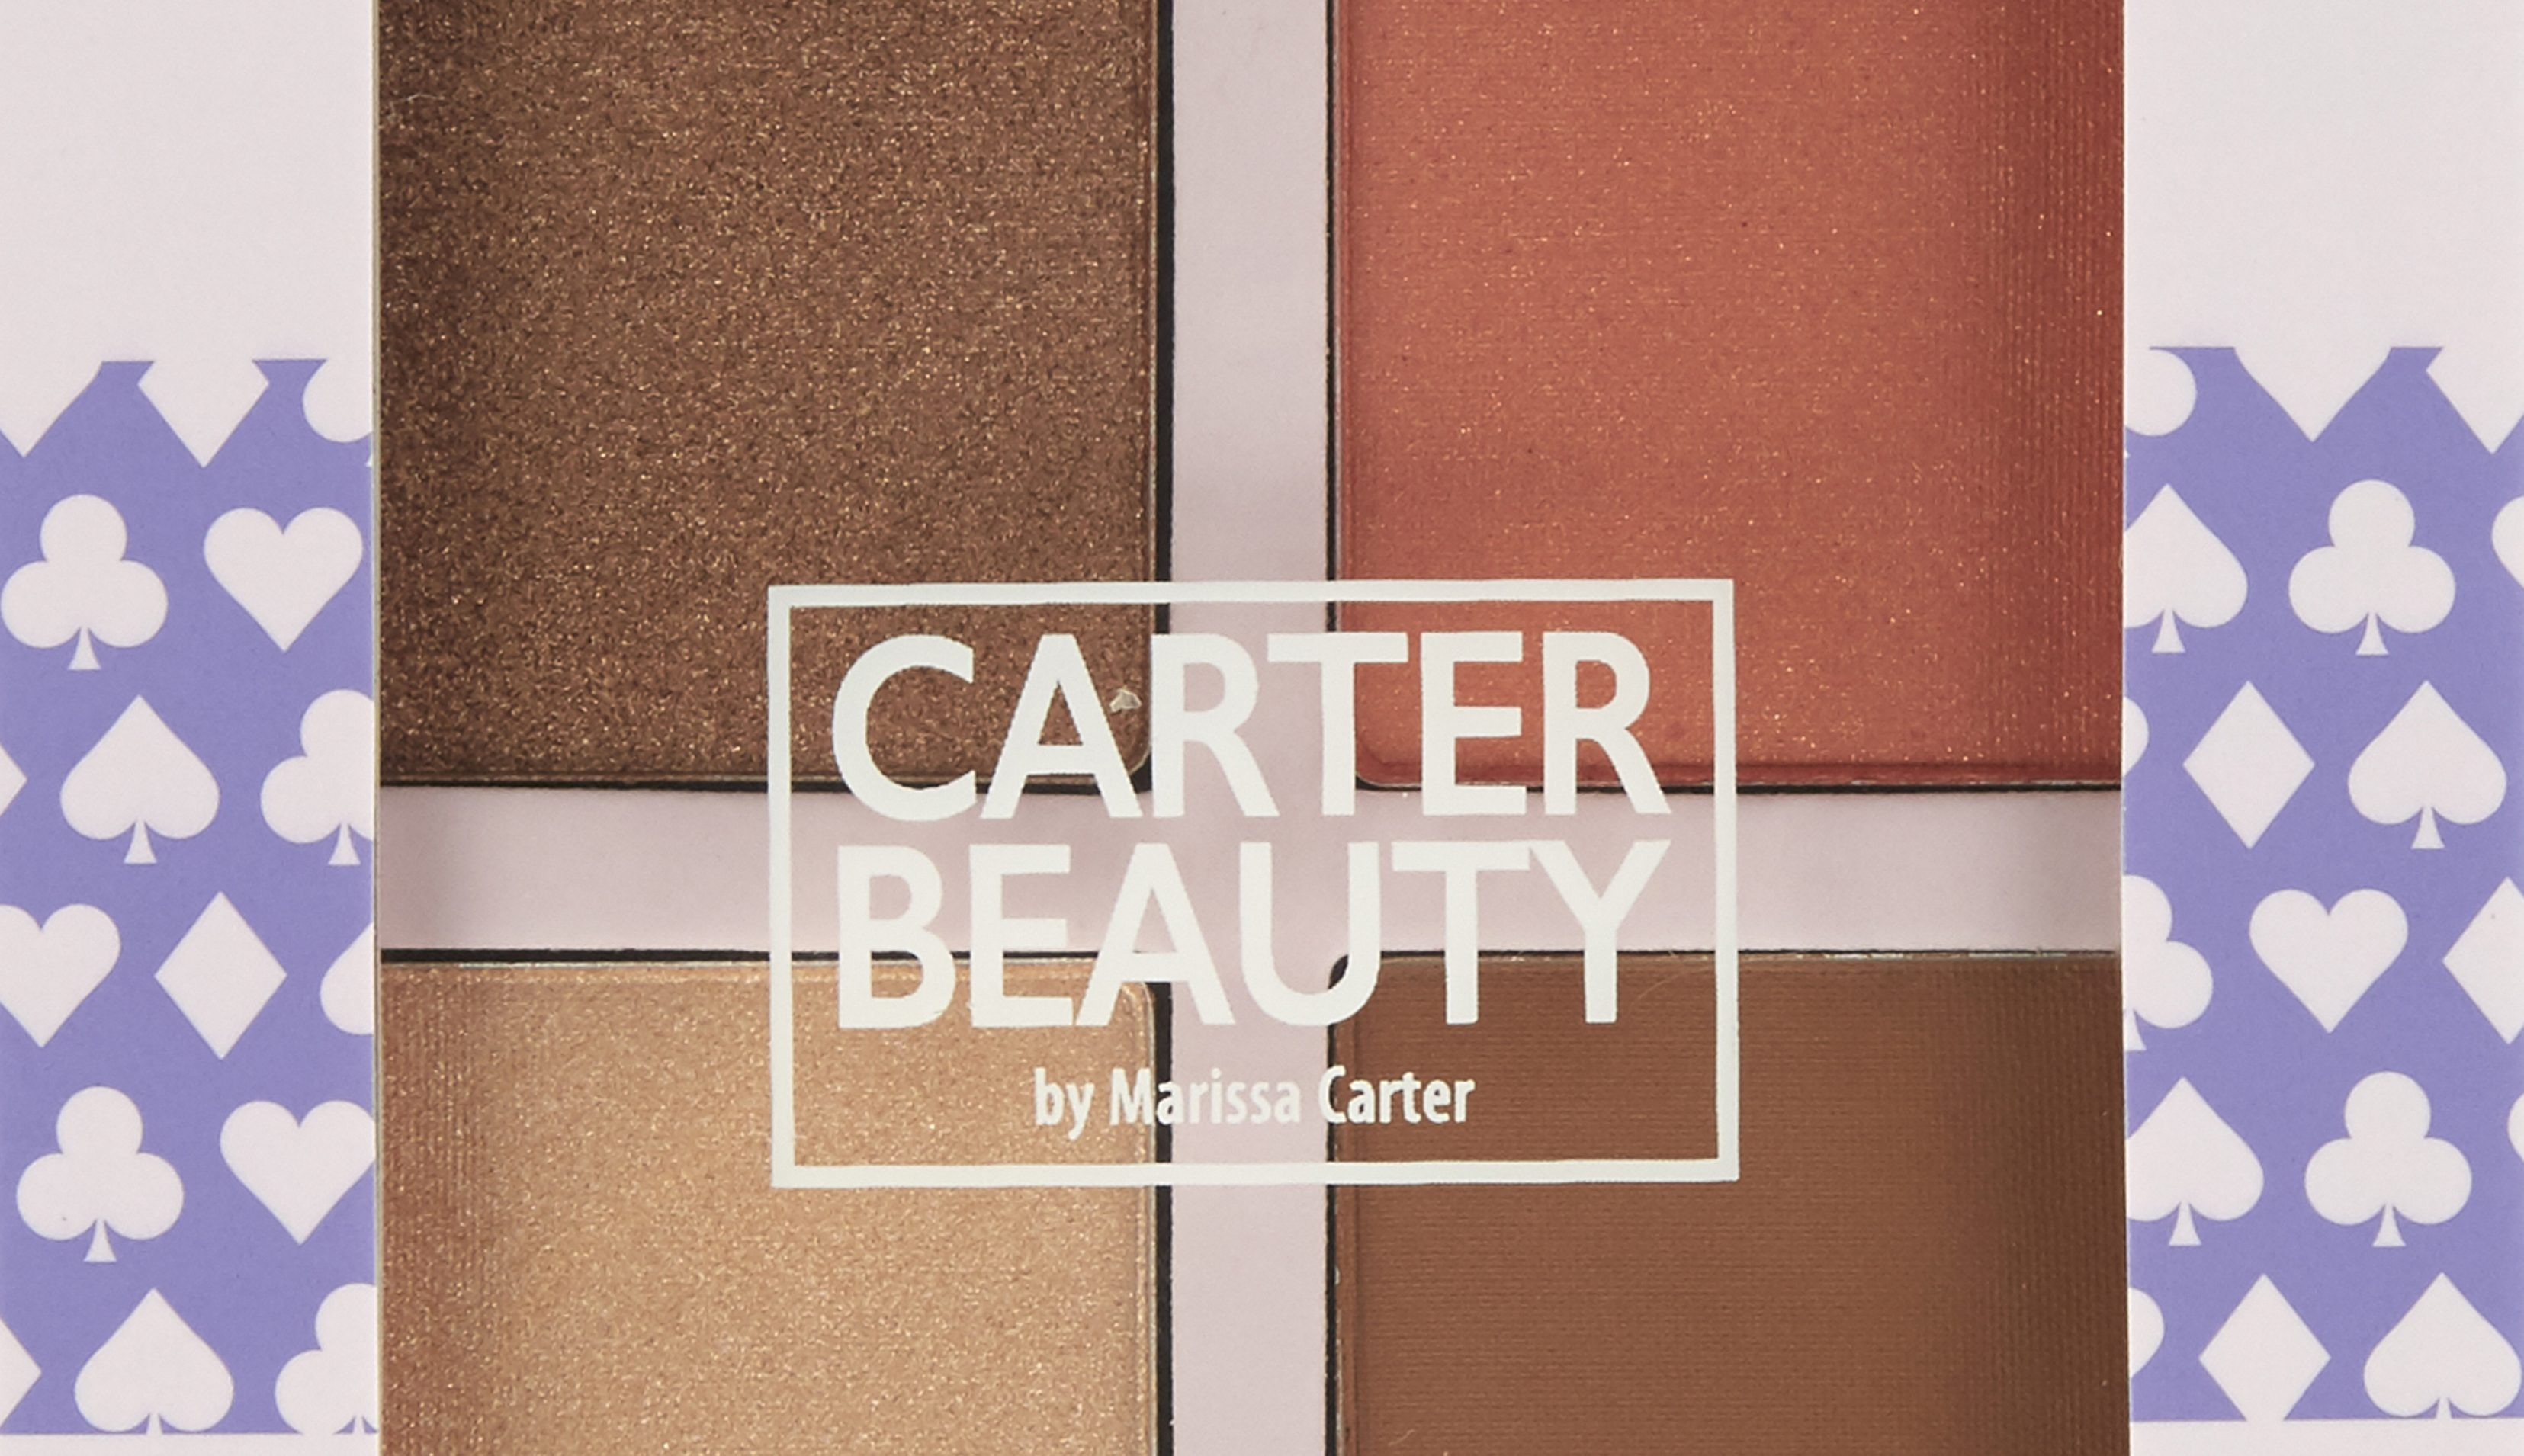 Carter Beauty by Marissa Carter_ Full House Mixed Face Palette €7.95_01